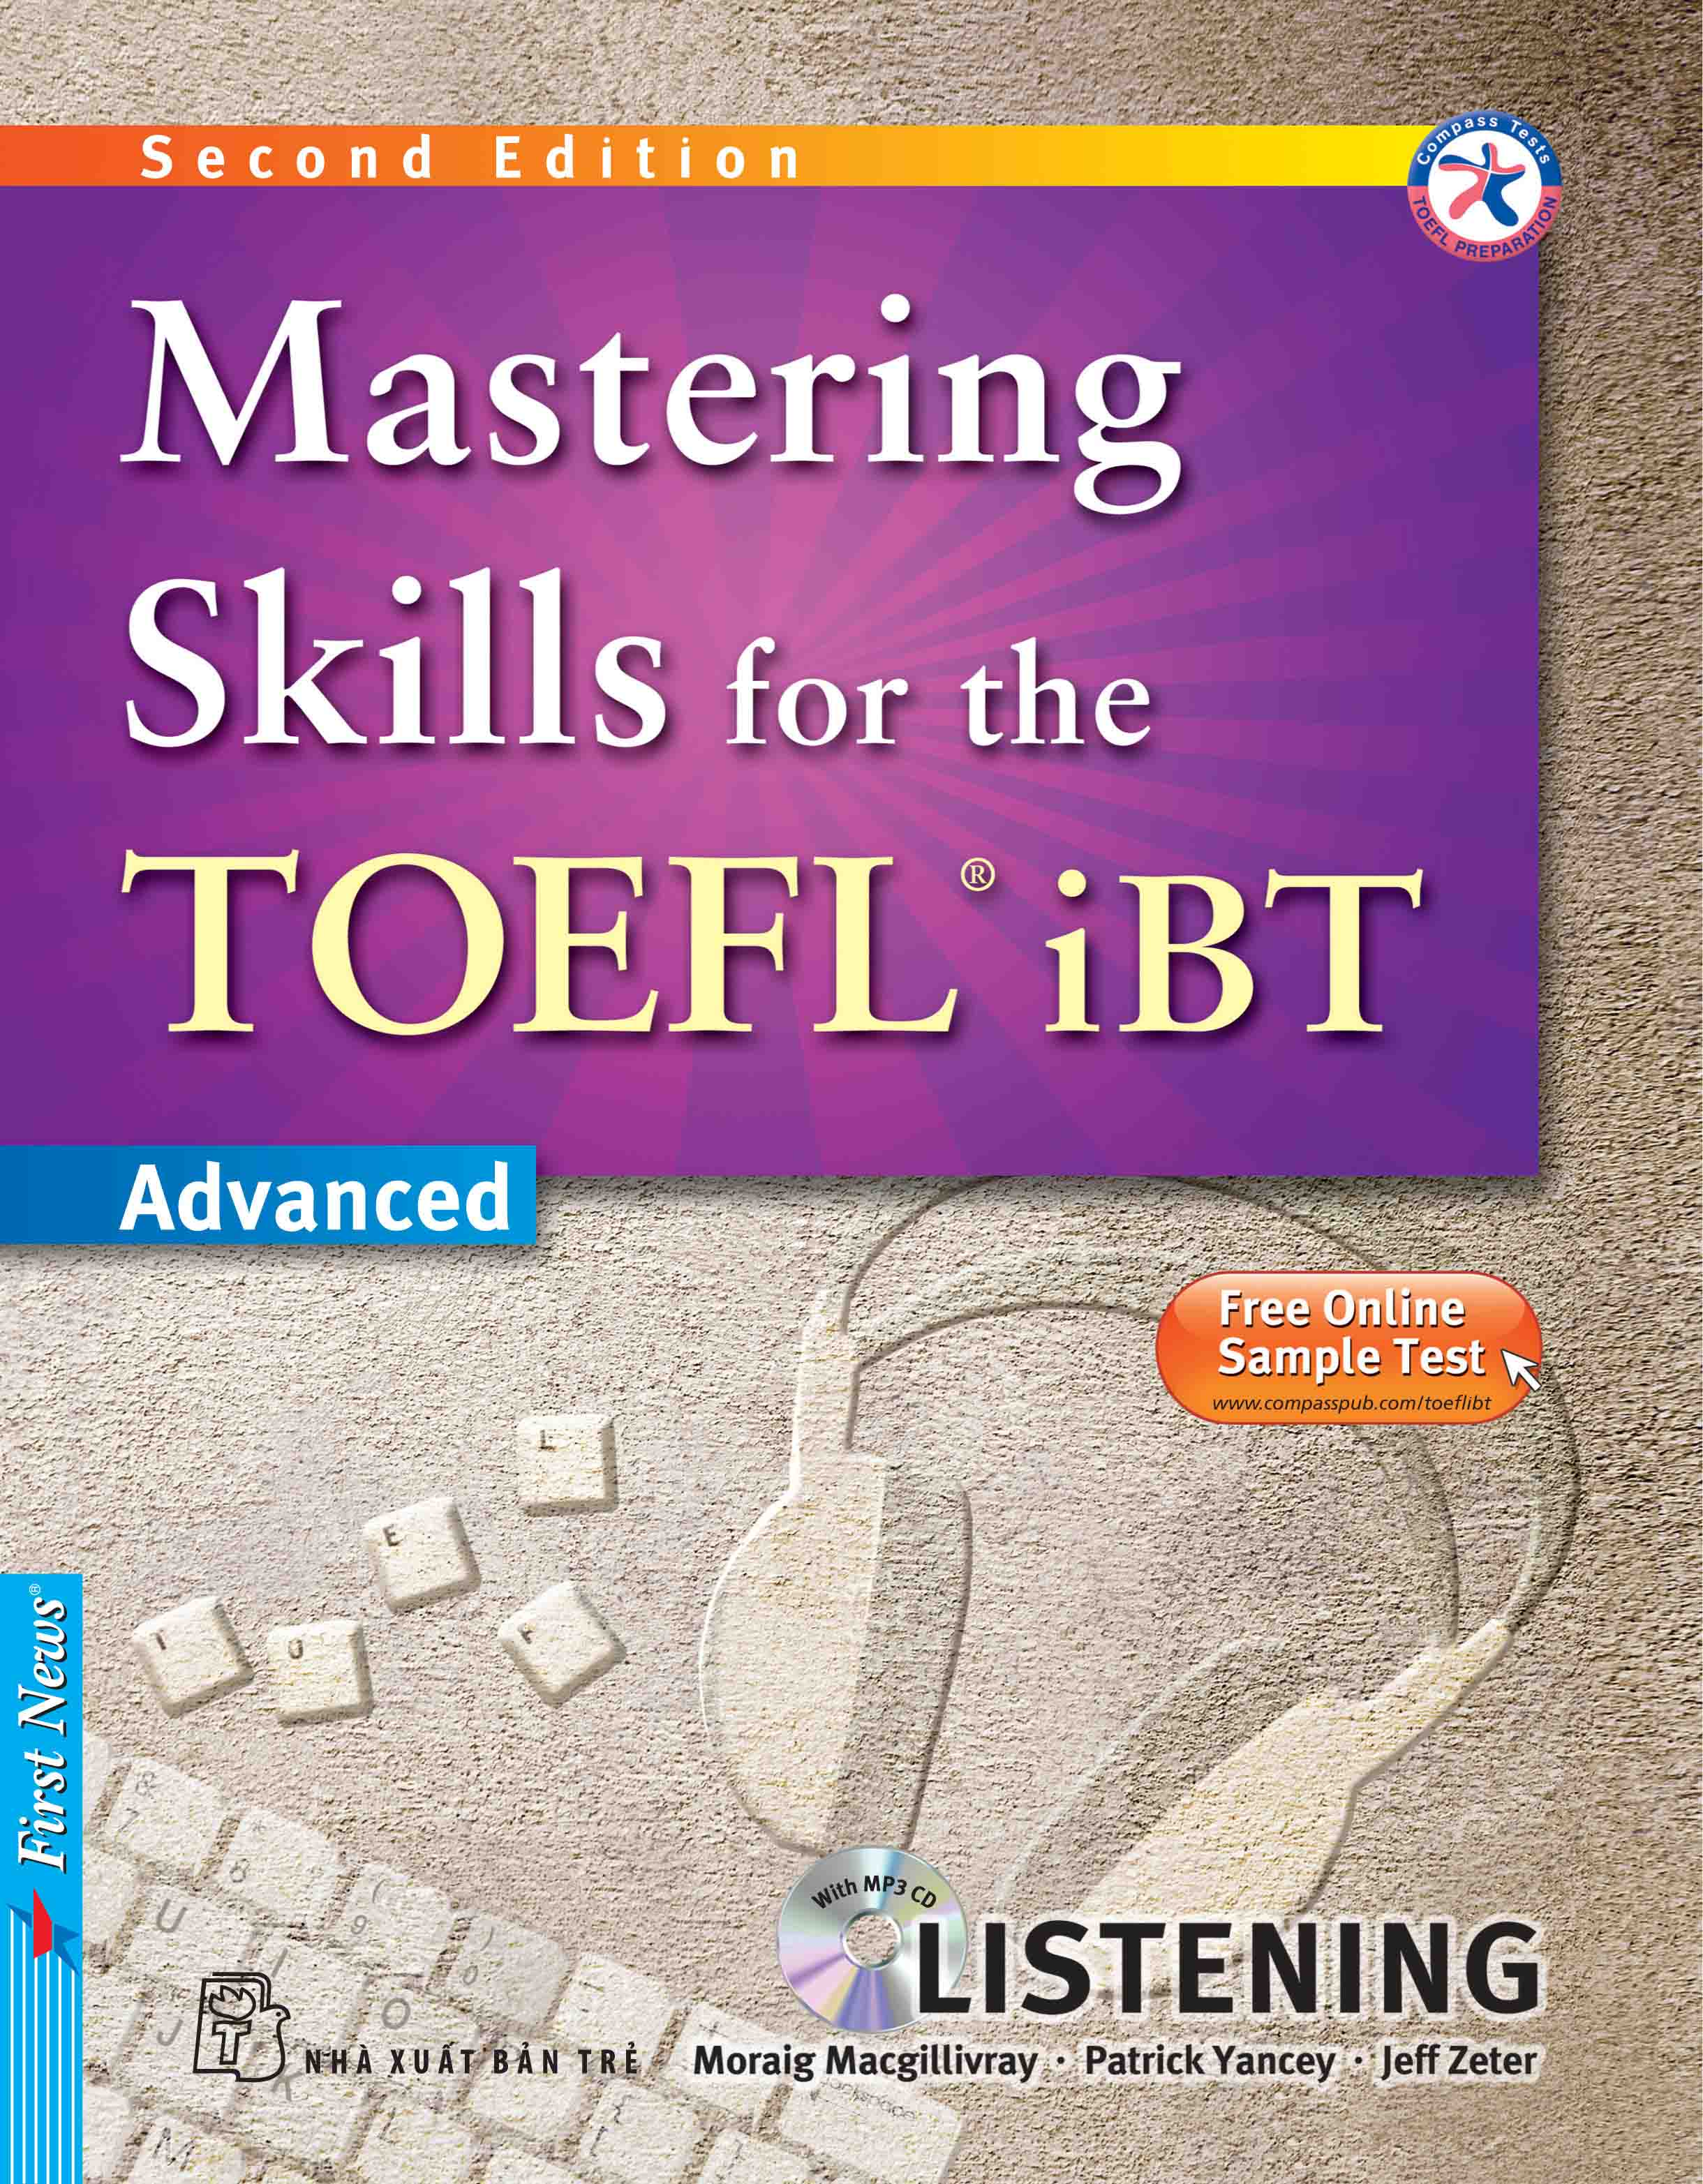 MASTERING SKILLS FOR THE TOEFL IBT - LISTENING (Kèm CD Mp3)